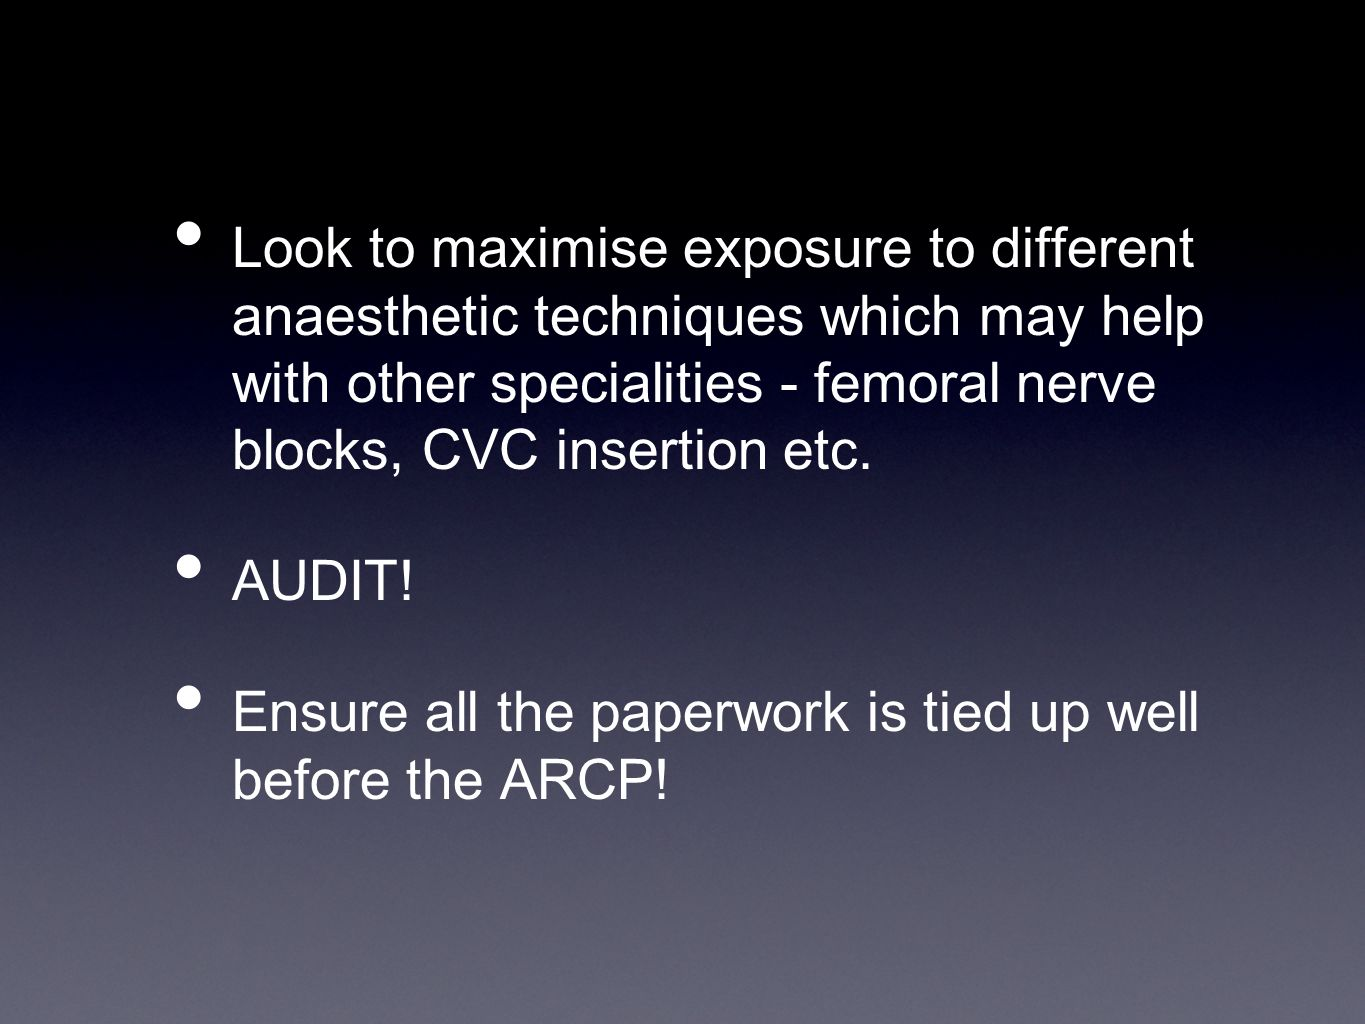 Look to maximise exposure to different anaesthetic techniques which may help with other specialities - femoral nerve blocks, CVC insertion etc.